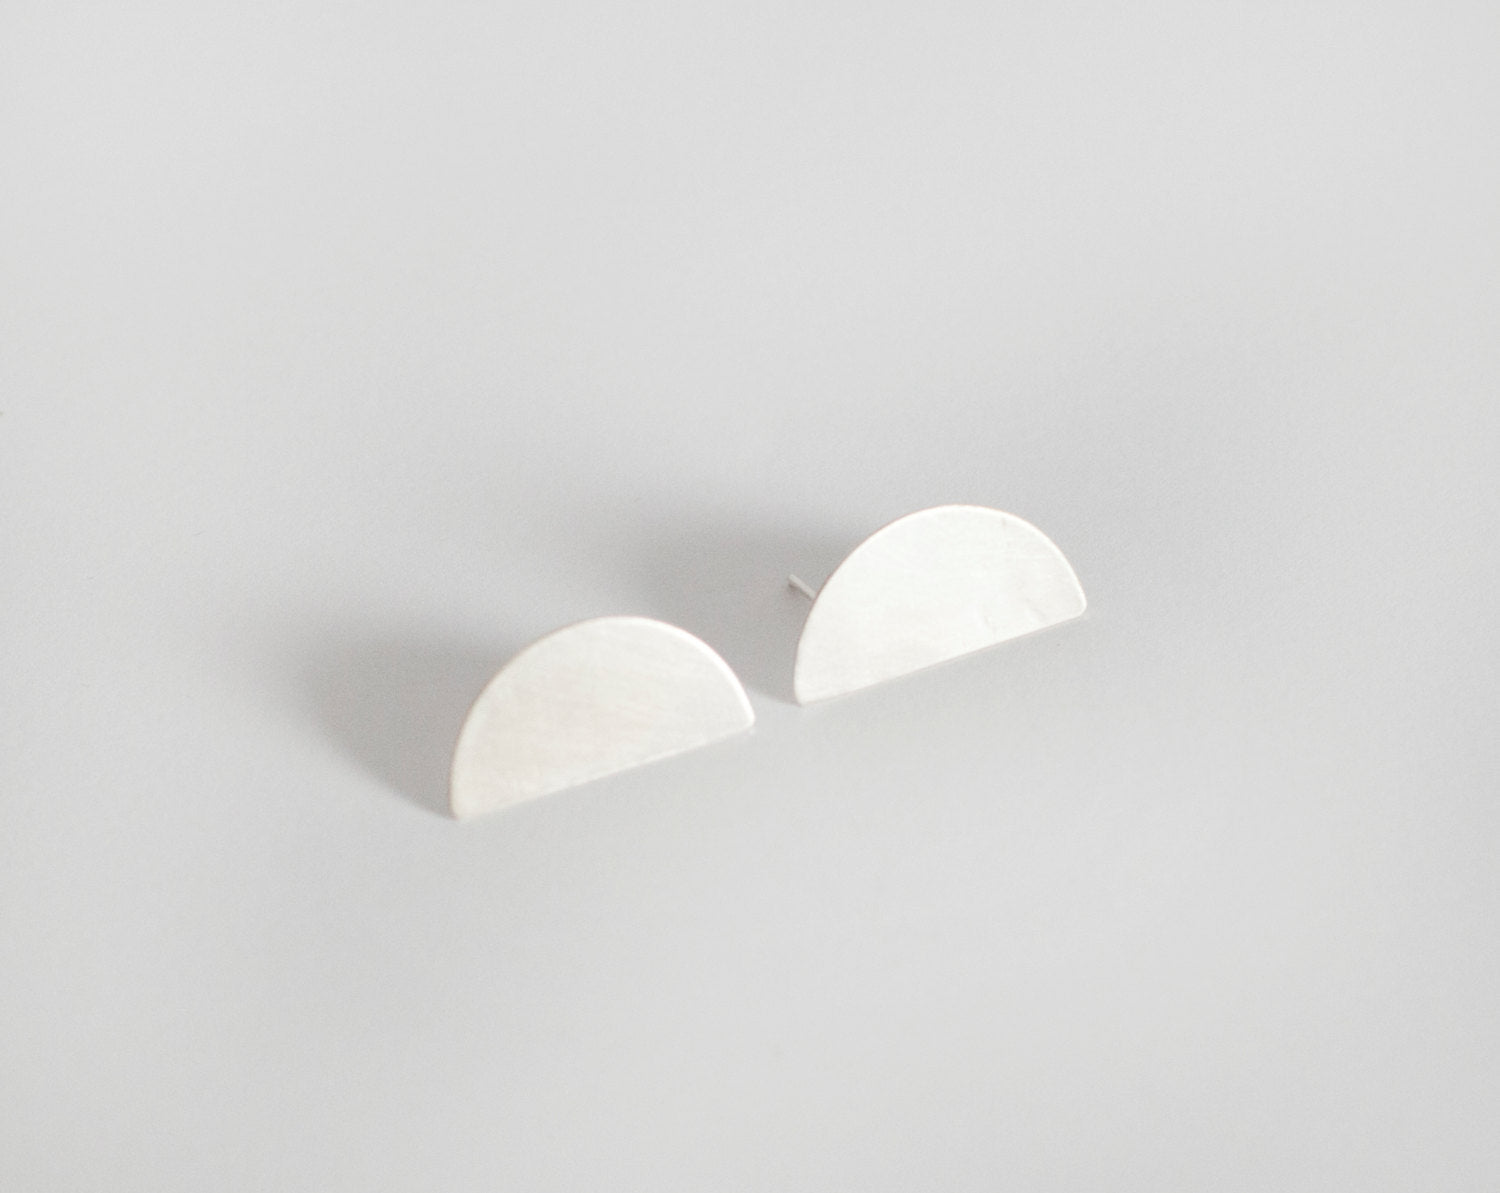 Short halfmoon stud earrings in silver, modern, discreet, stylish, extremely easy to wear •